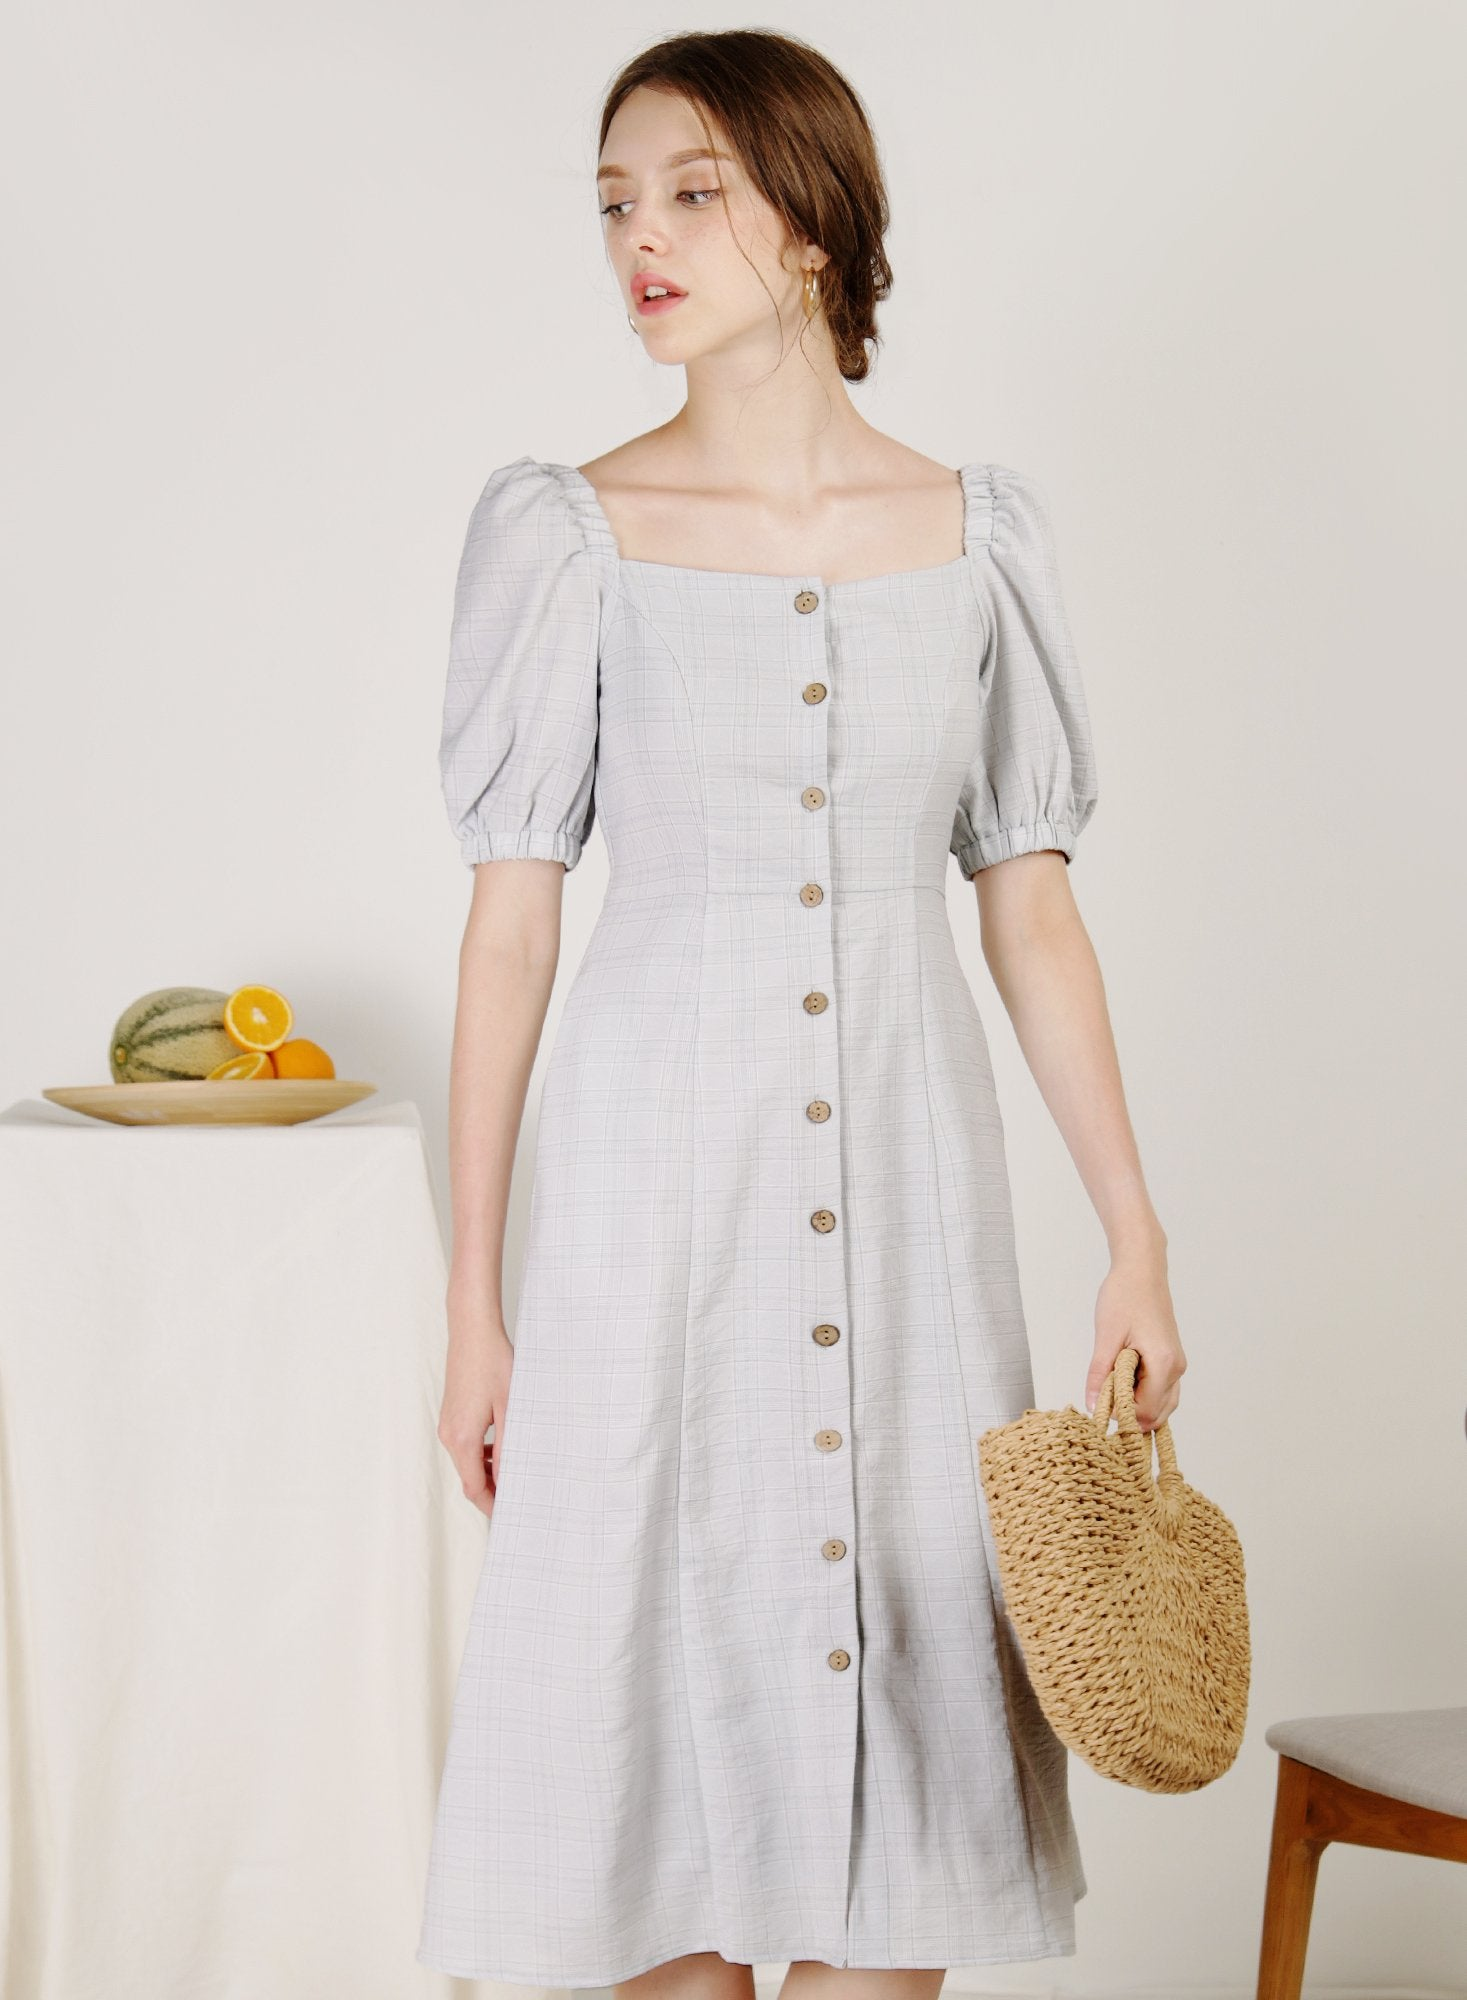 Archive: Fresca Puff Sleeves Button Down Dress (Grey Checks)